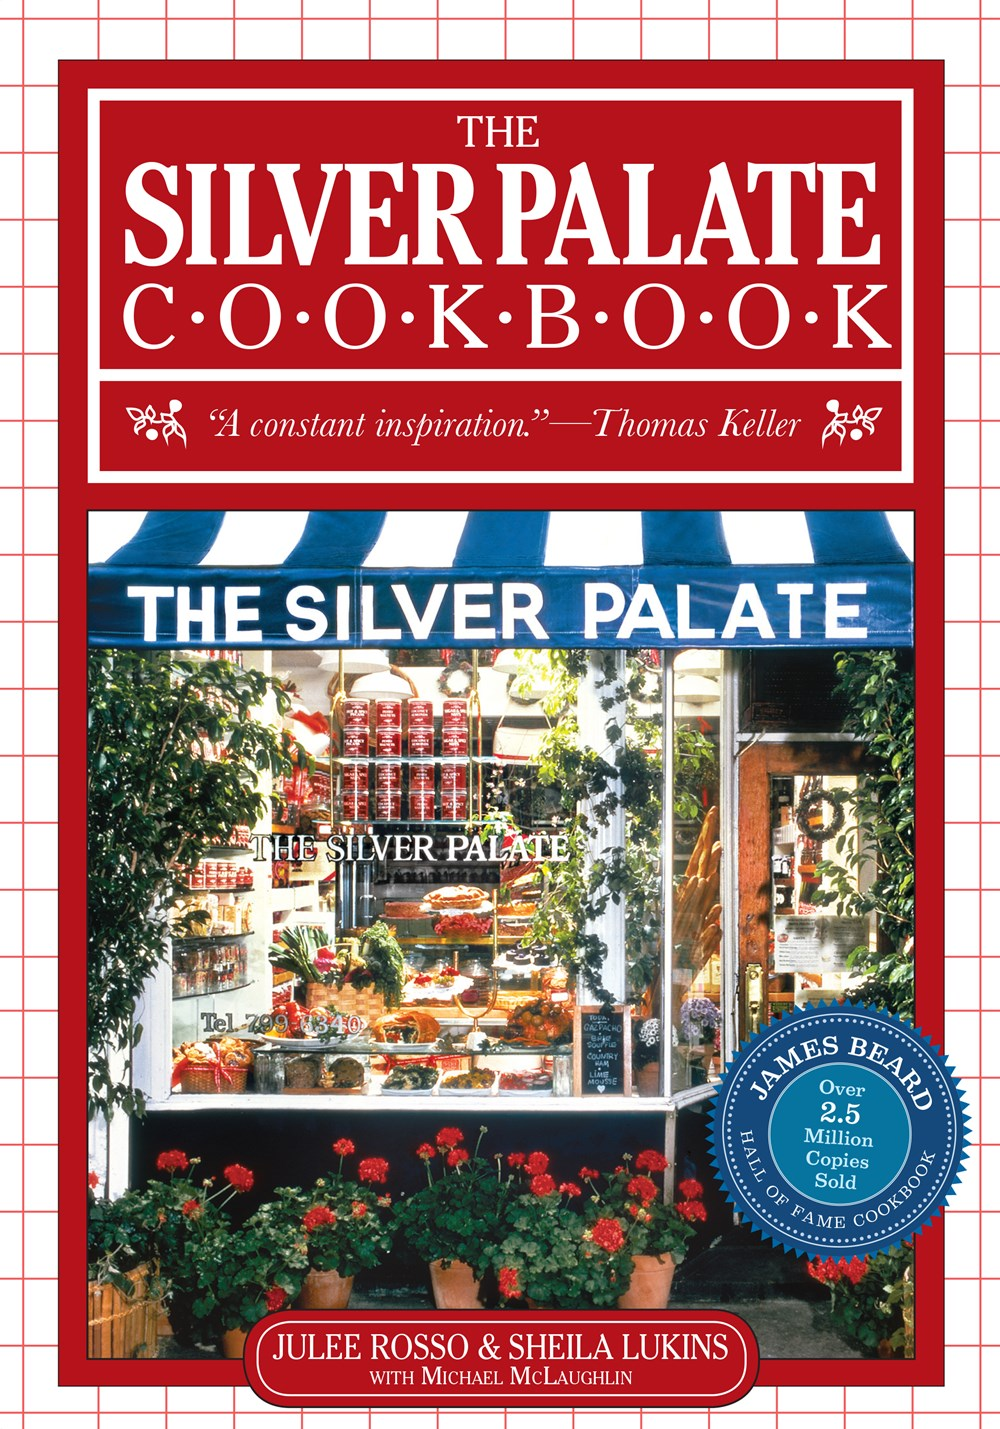 The Joy of Cookbooks: Top Picks for Fans of Recipes | The Reader's Shelf